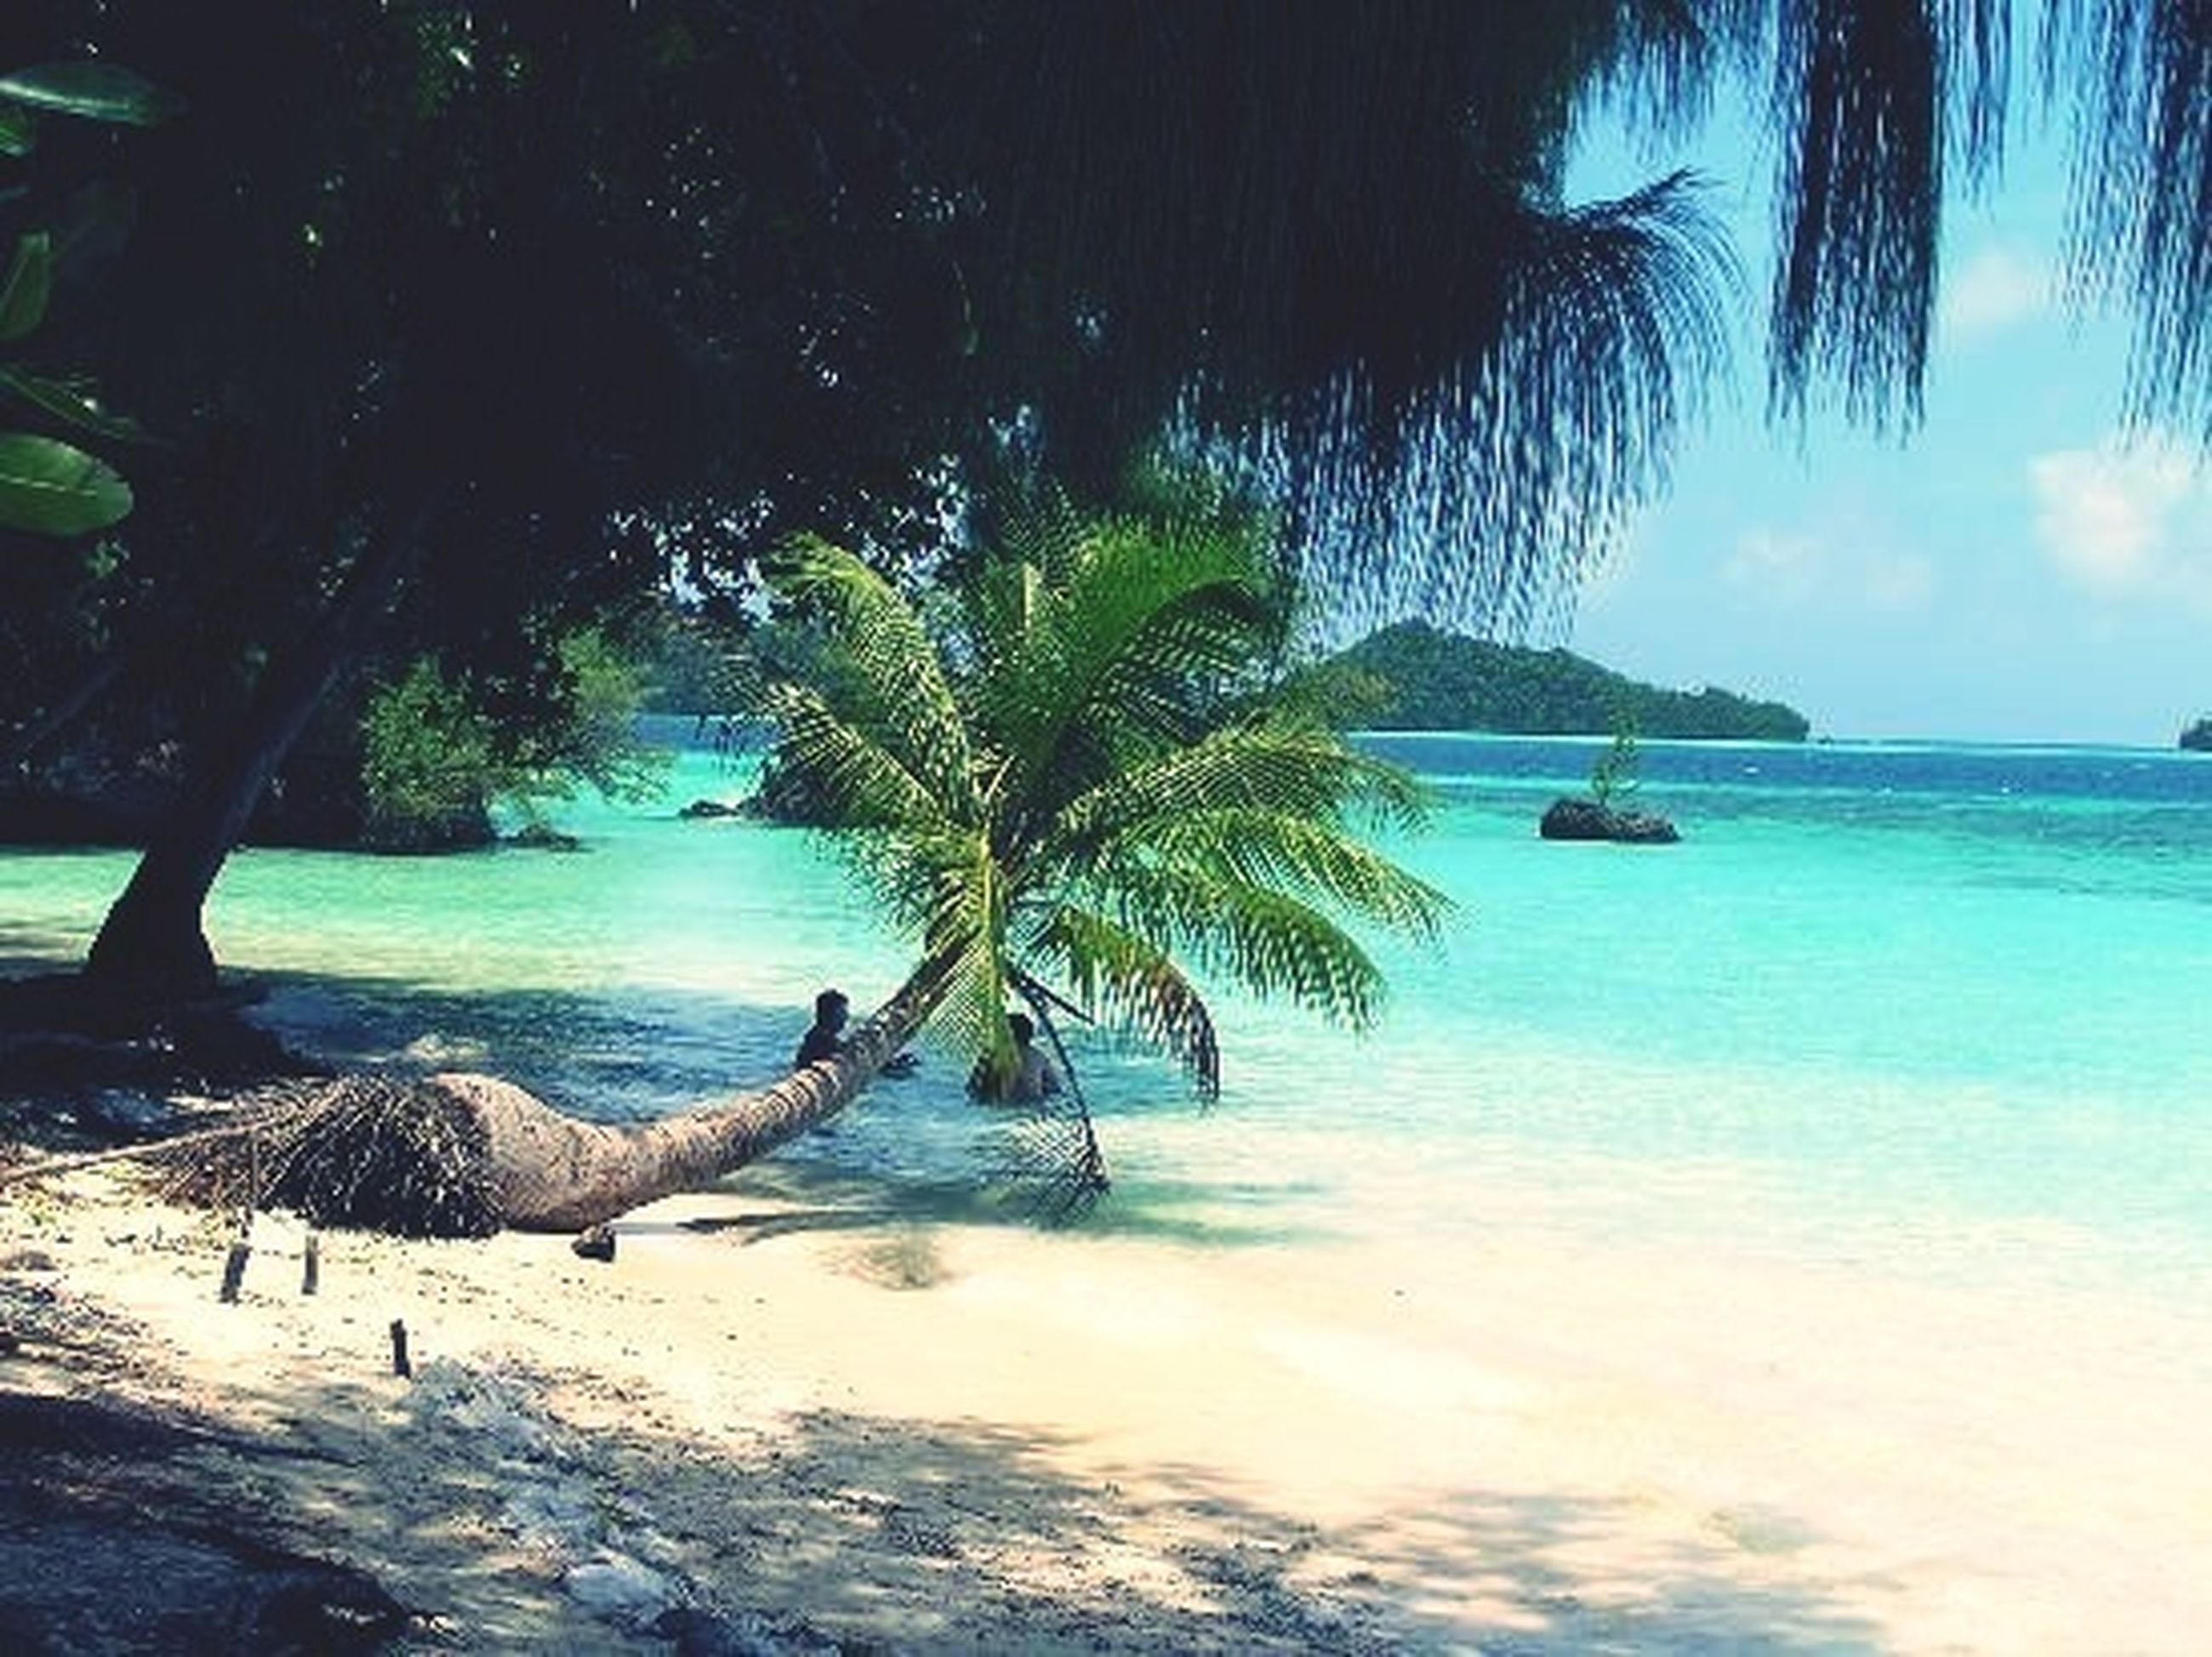 water, sea, animal themes, tree, beach, animals in the wild, palm tree, bird, wildlife, shore, tranquil scene, tranquility, nature, beauty in nature, scenics, sky, horizon over water, sand, blue, one animal